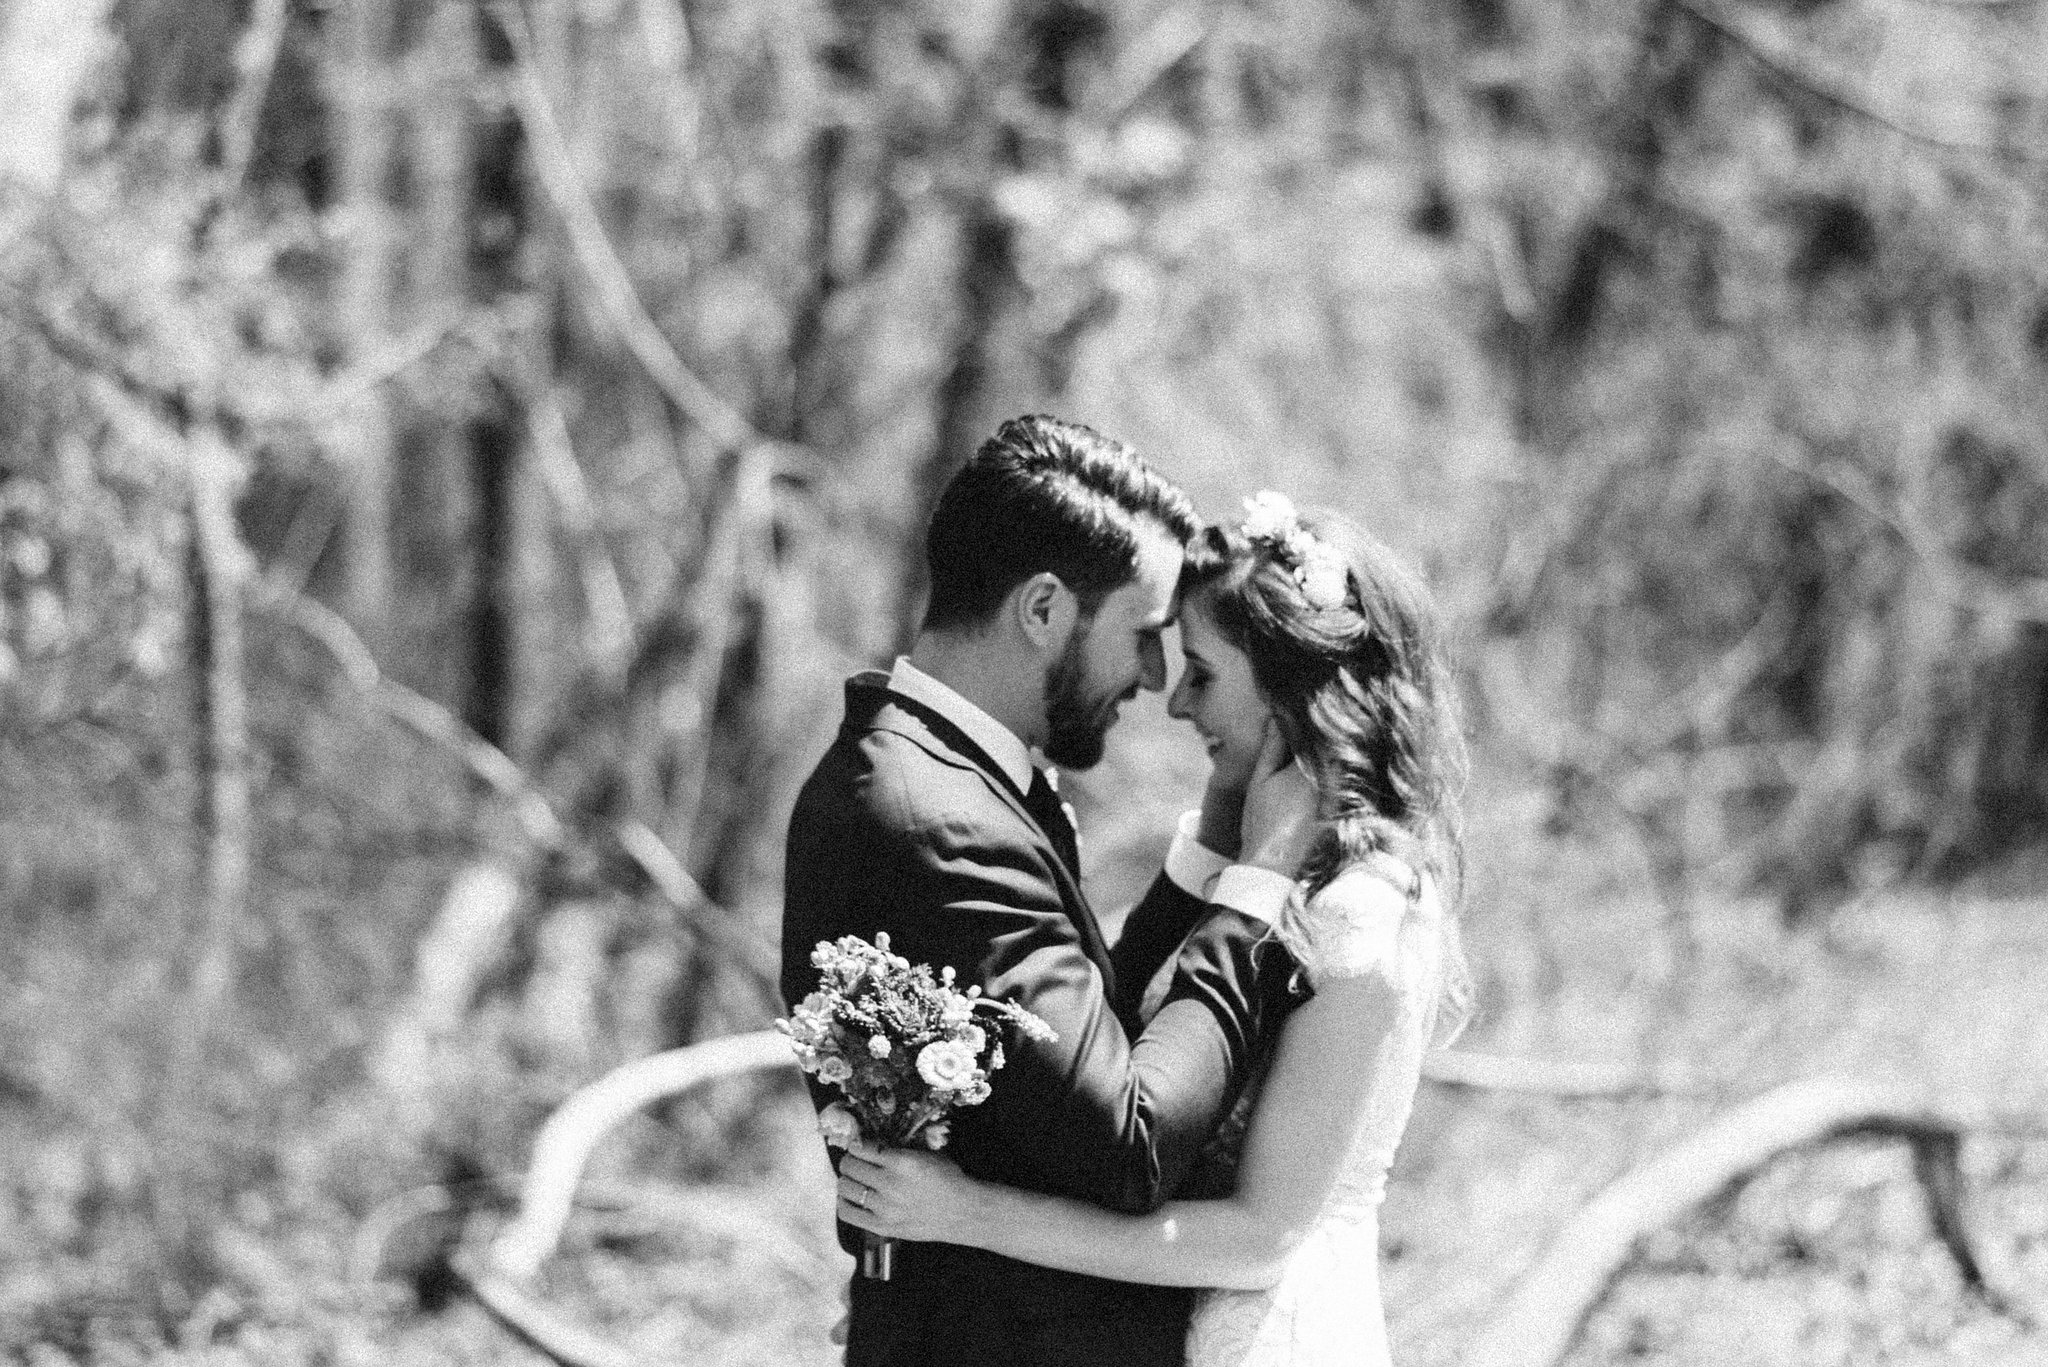 Spring Outdoor Wedding, Park, Baltimore Wedding Photographer, DIY, Classic, Upcycled, Garden Party, Romantic, Bride and Groom Holding Each Other, Black and White Photo, Soft Focus